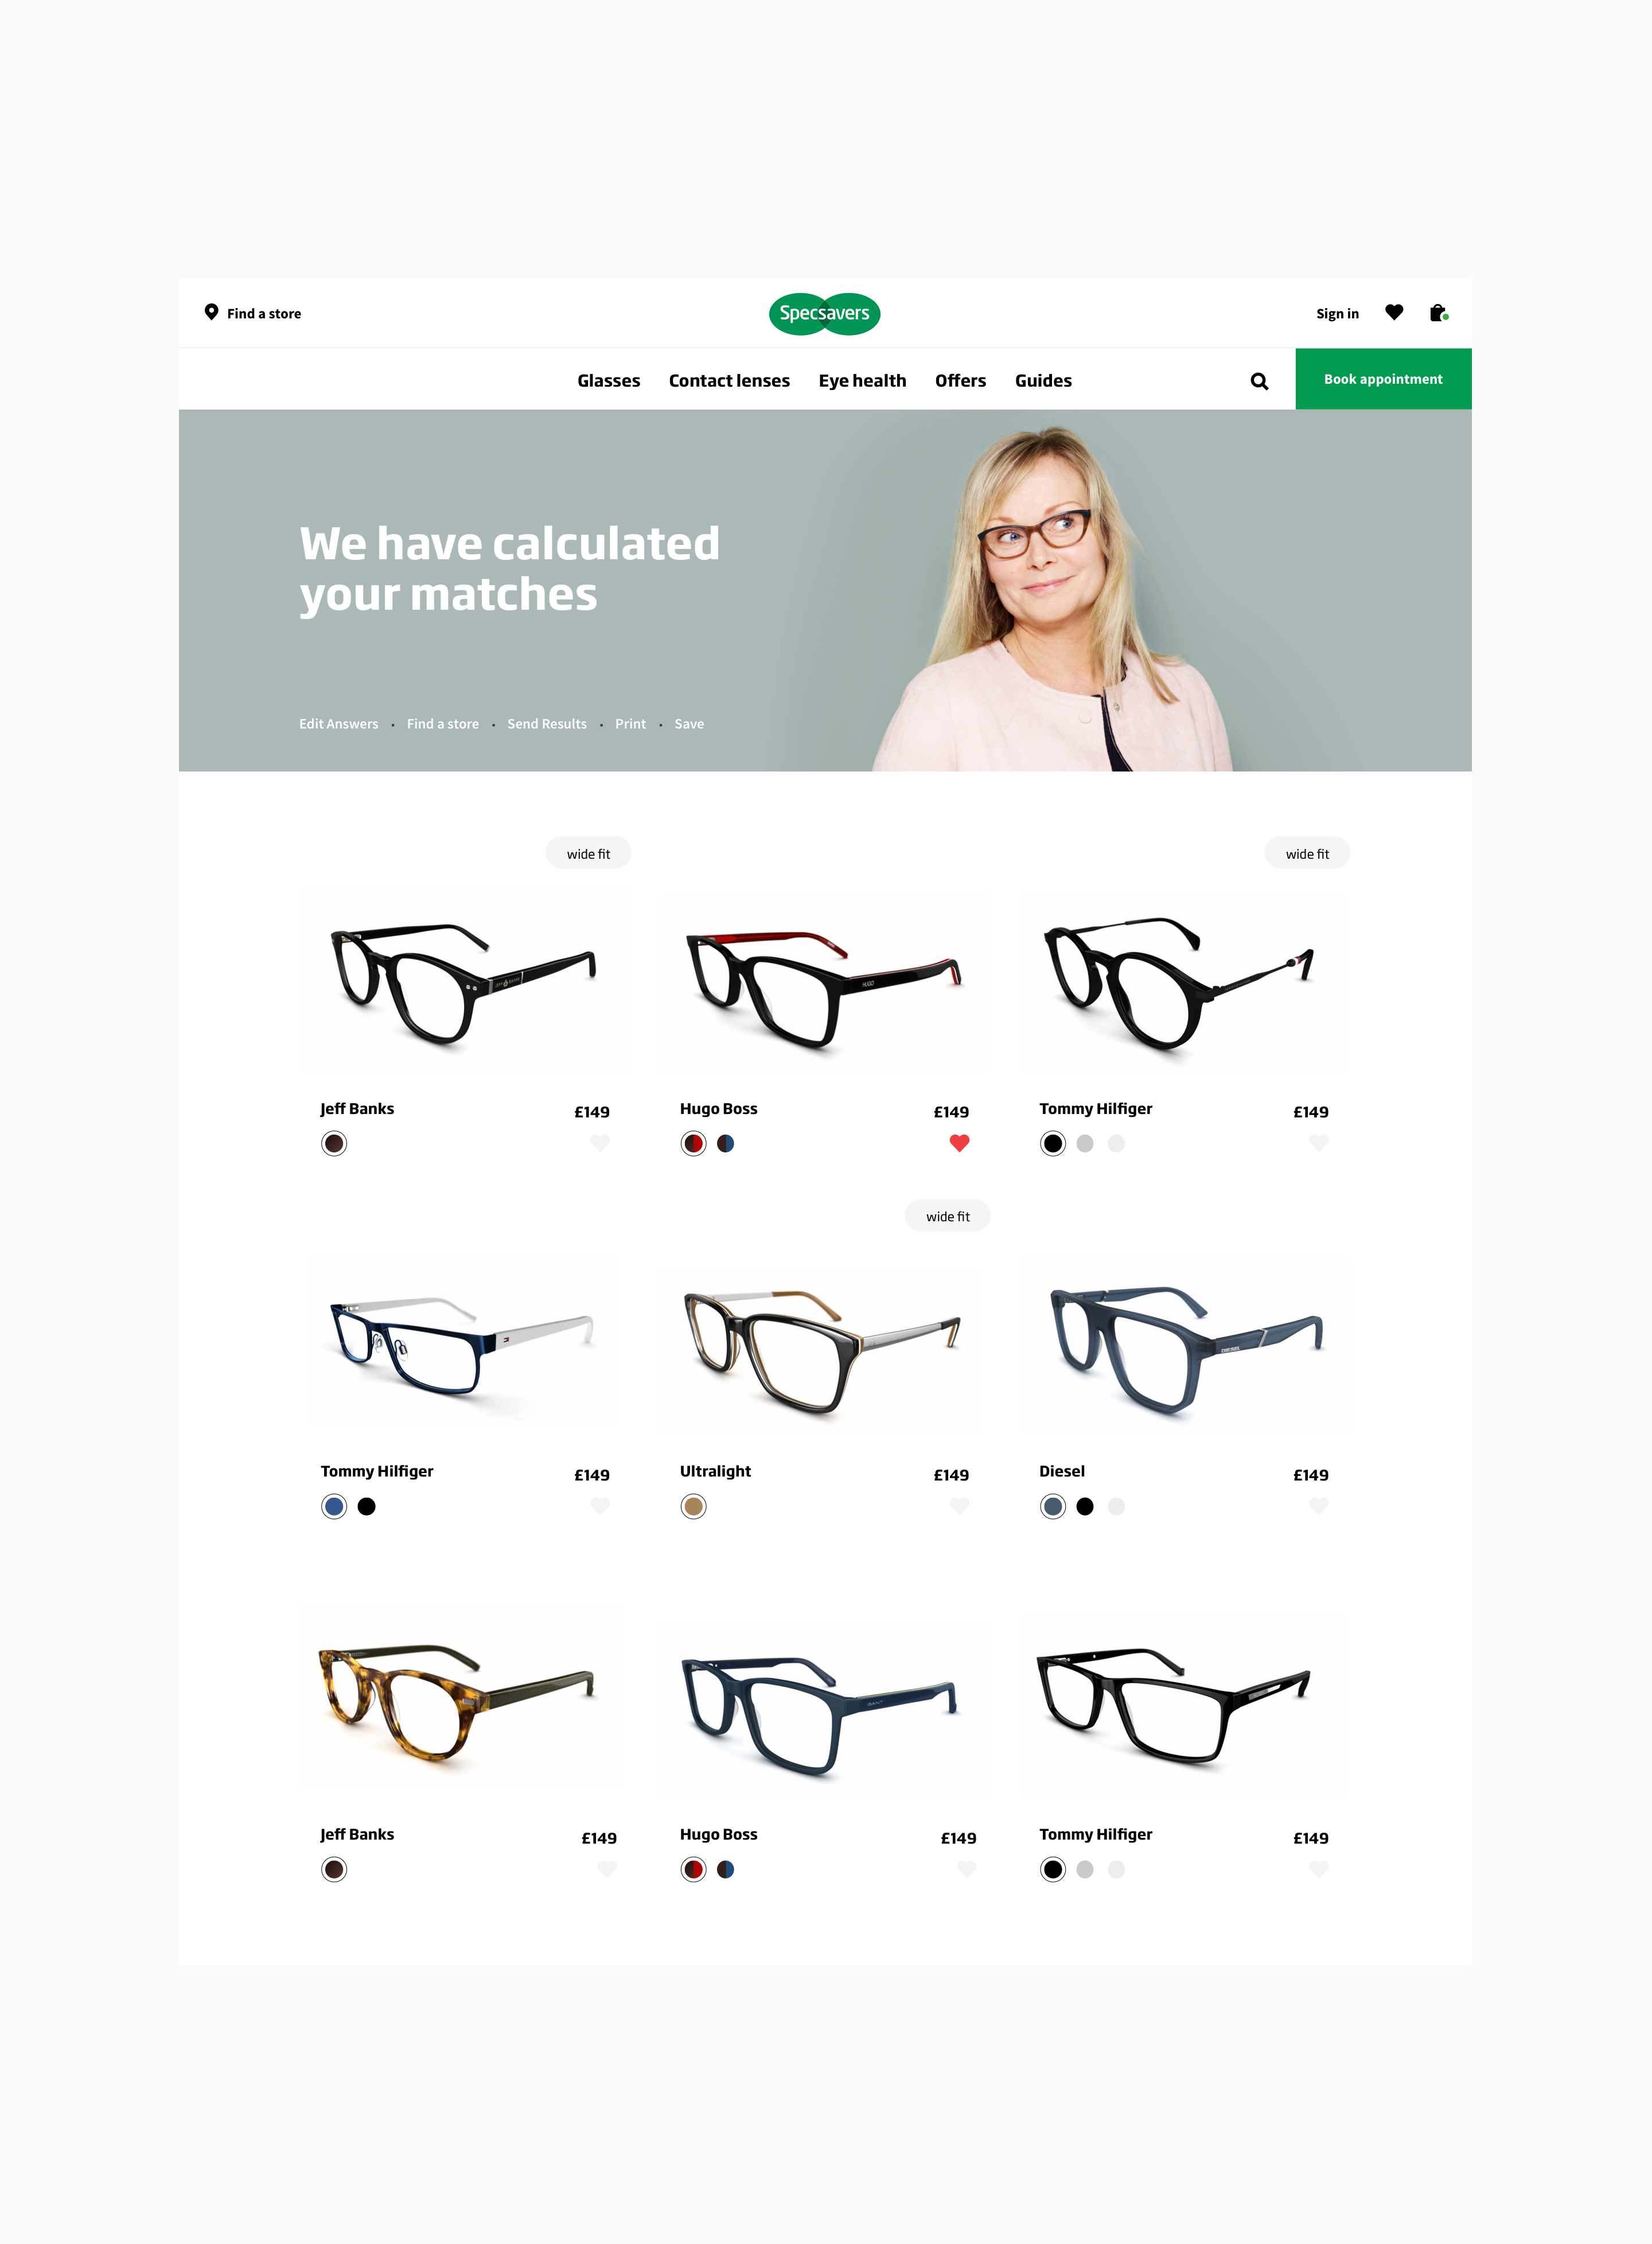 Specsavers-Product-finder-Results_1440px